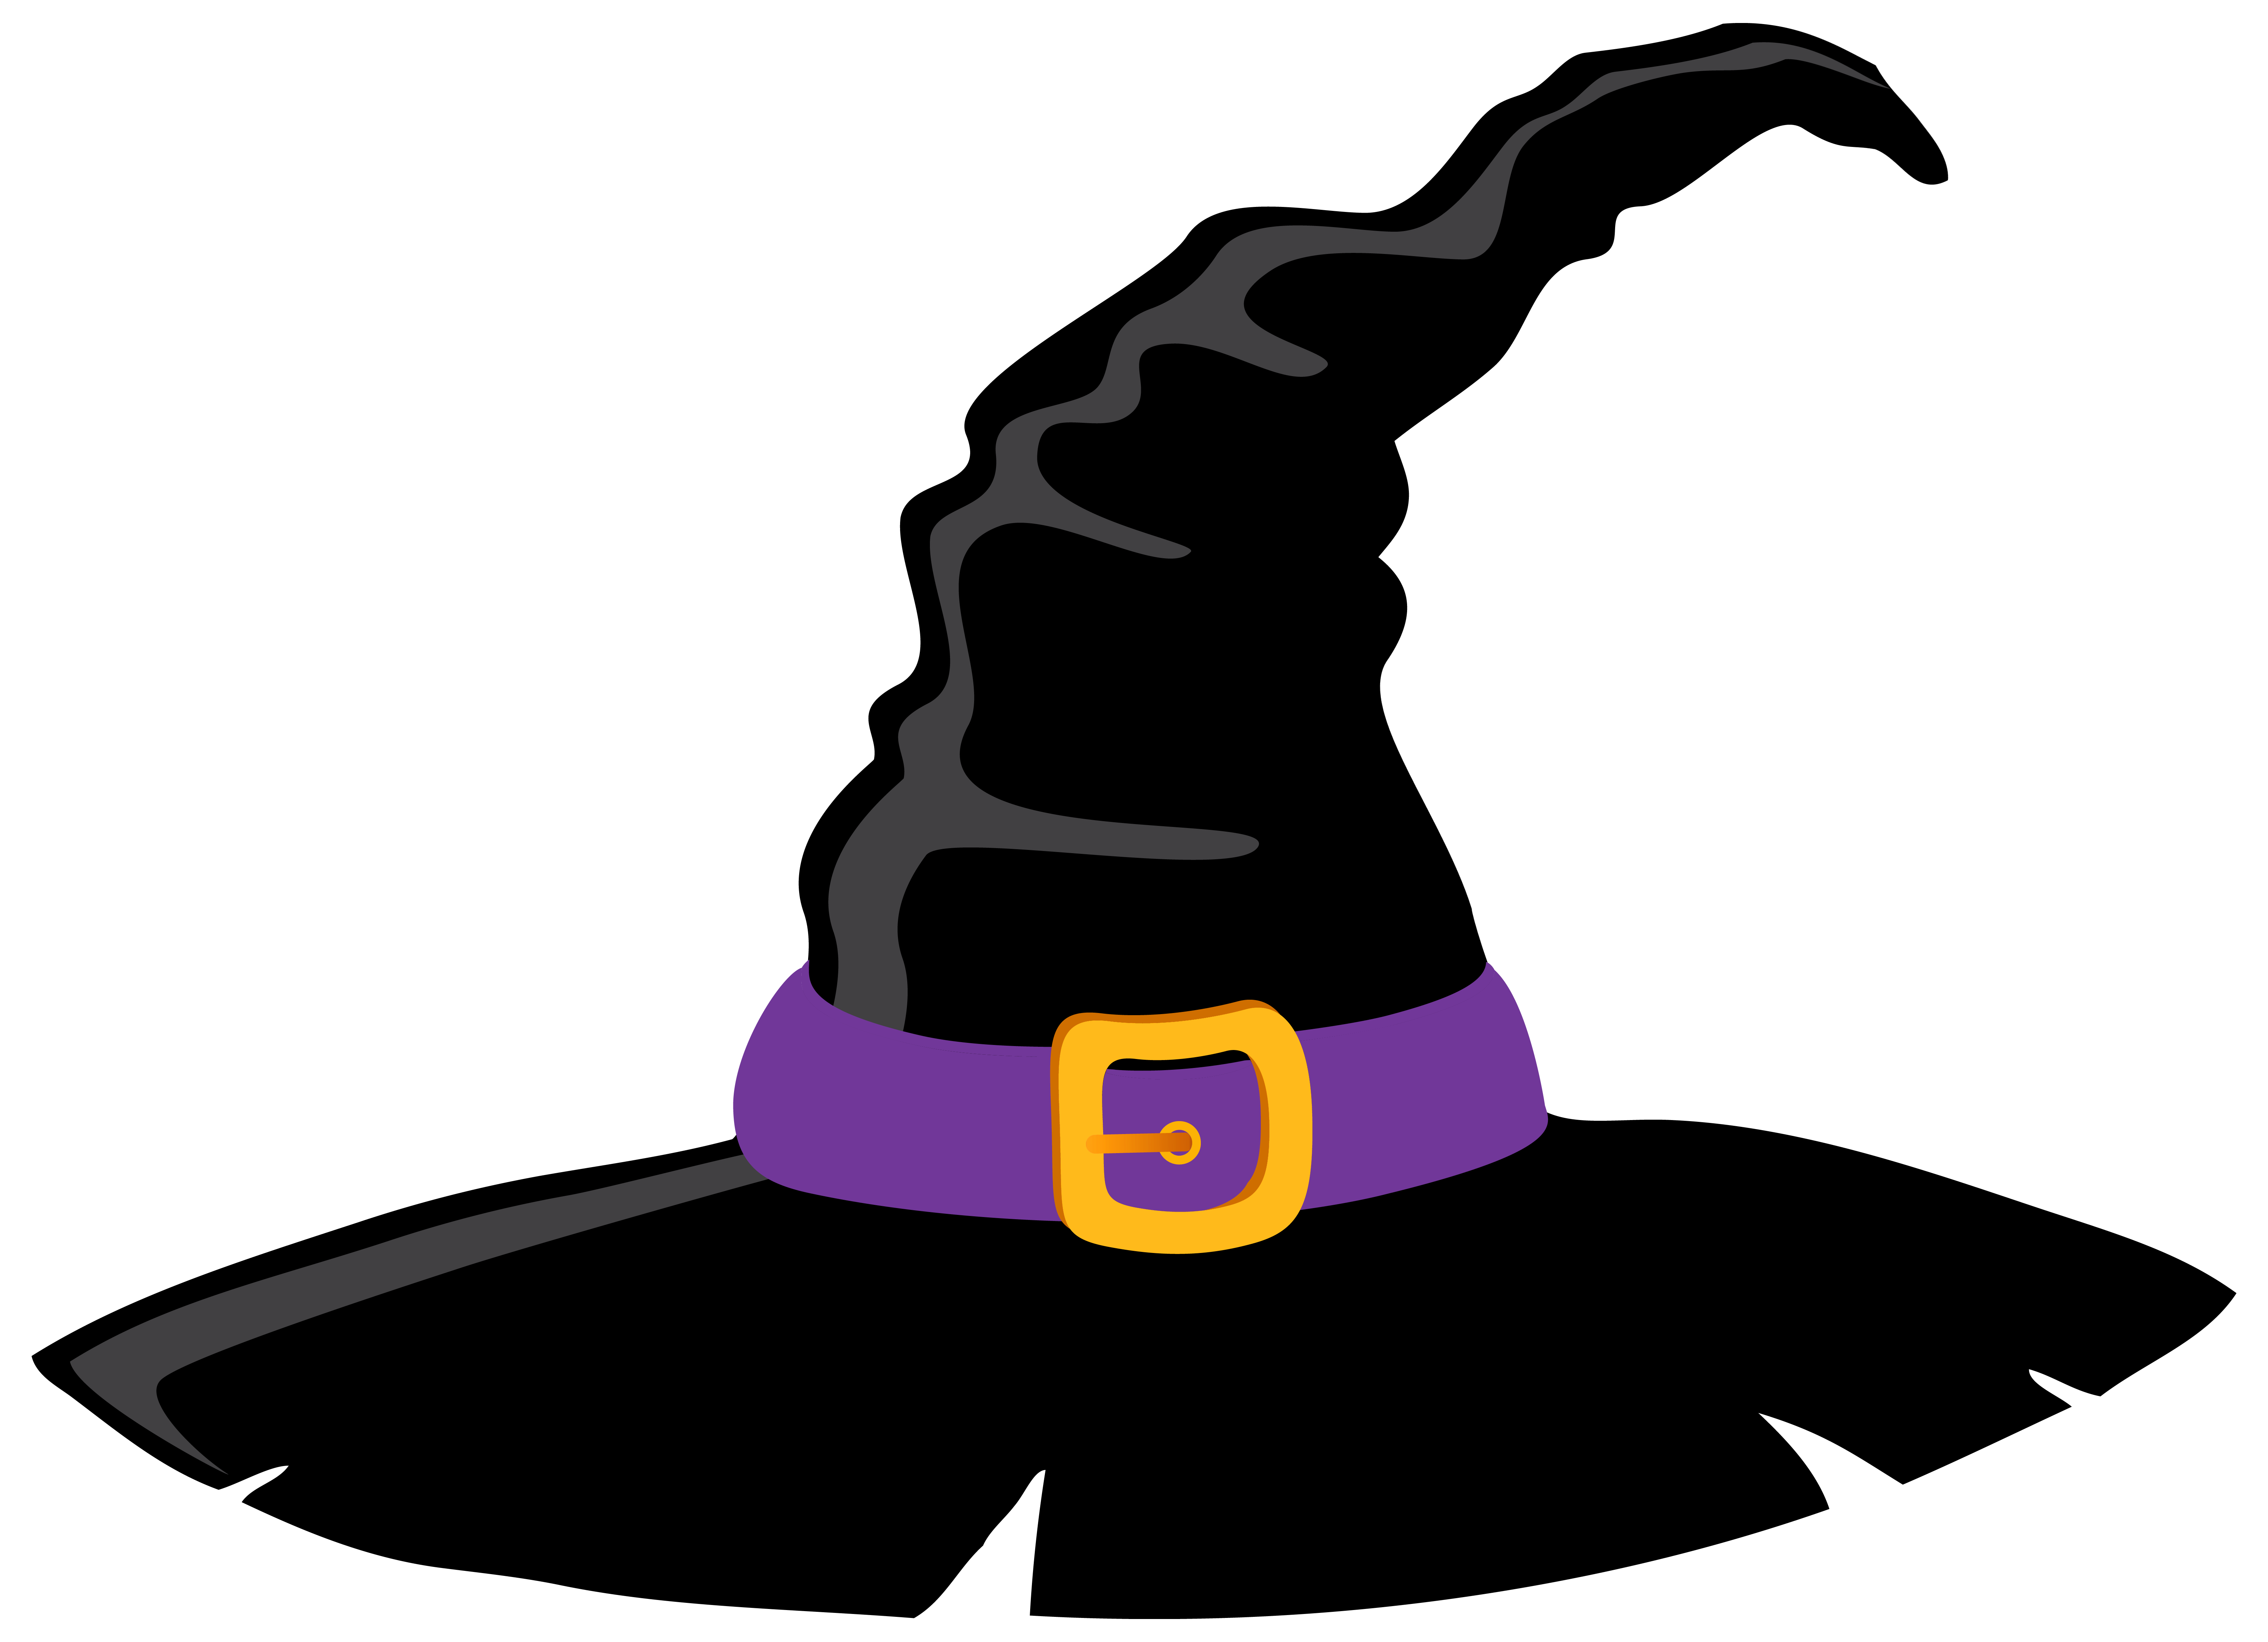 6312x4571 Witch Hat Clipart Border